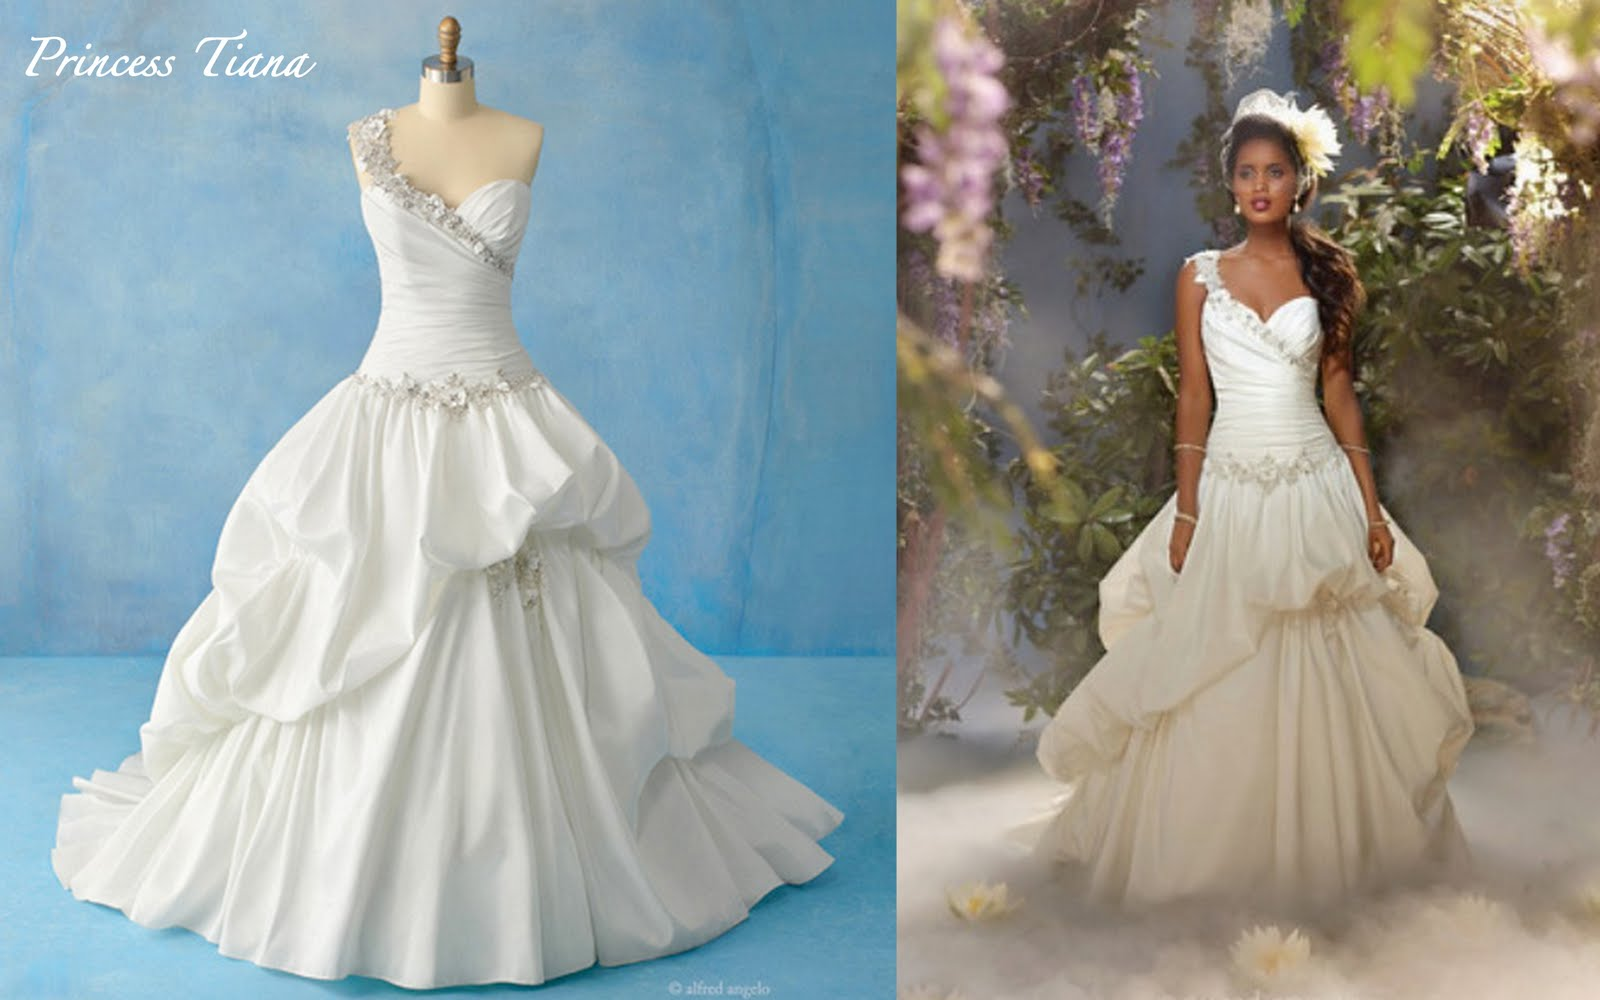 Fairy Tale Wedding Gowns by Alfred Angelo Fashion Naturally